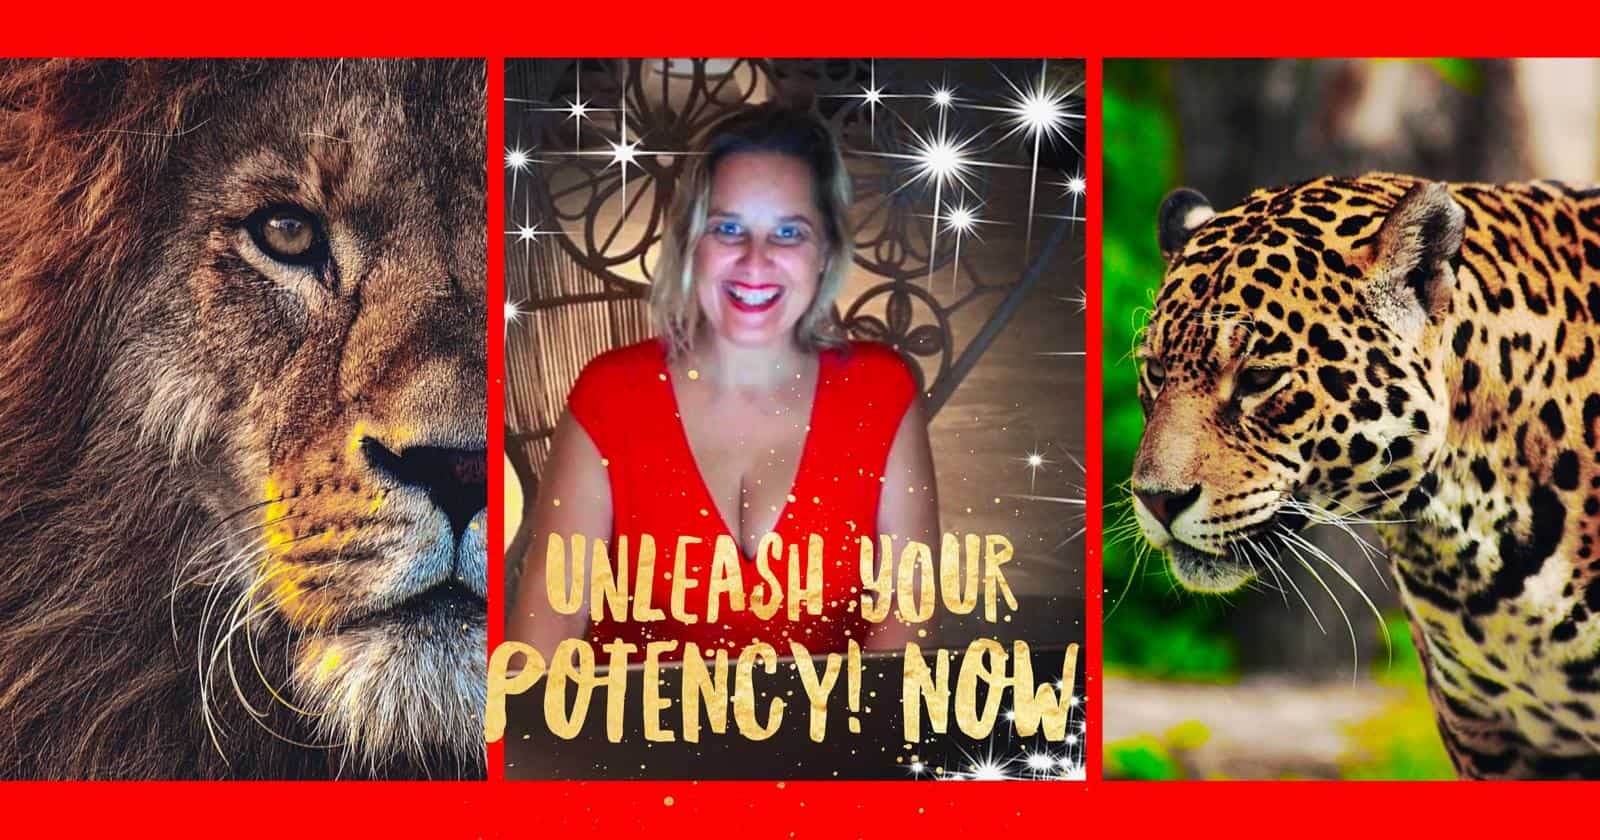 Unleash your Potency! Now